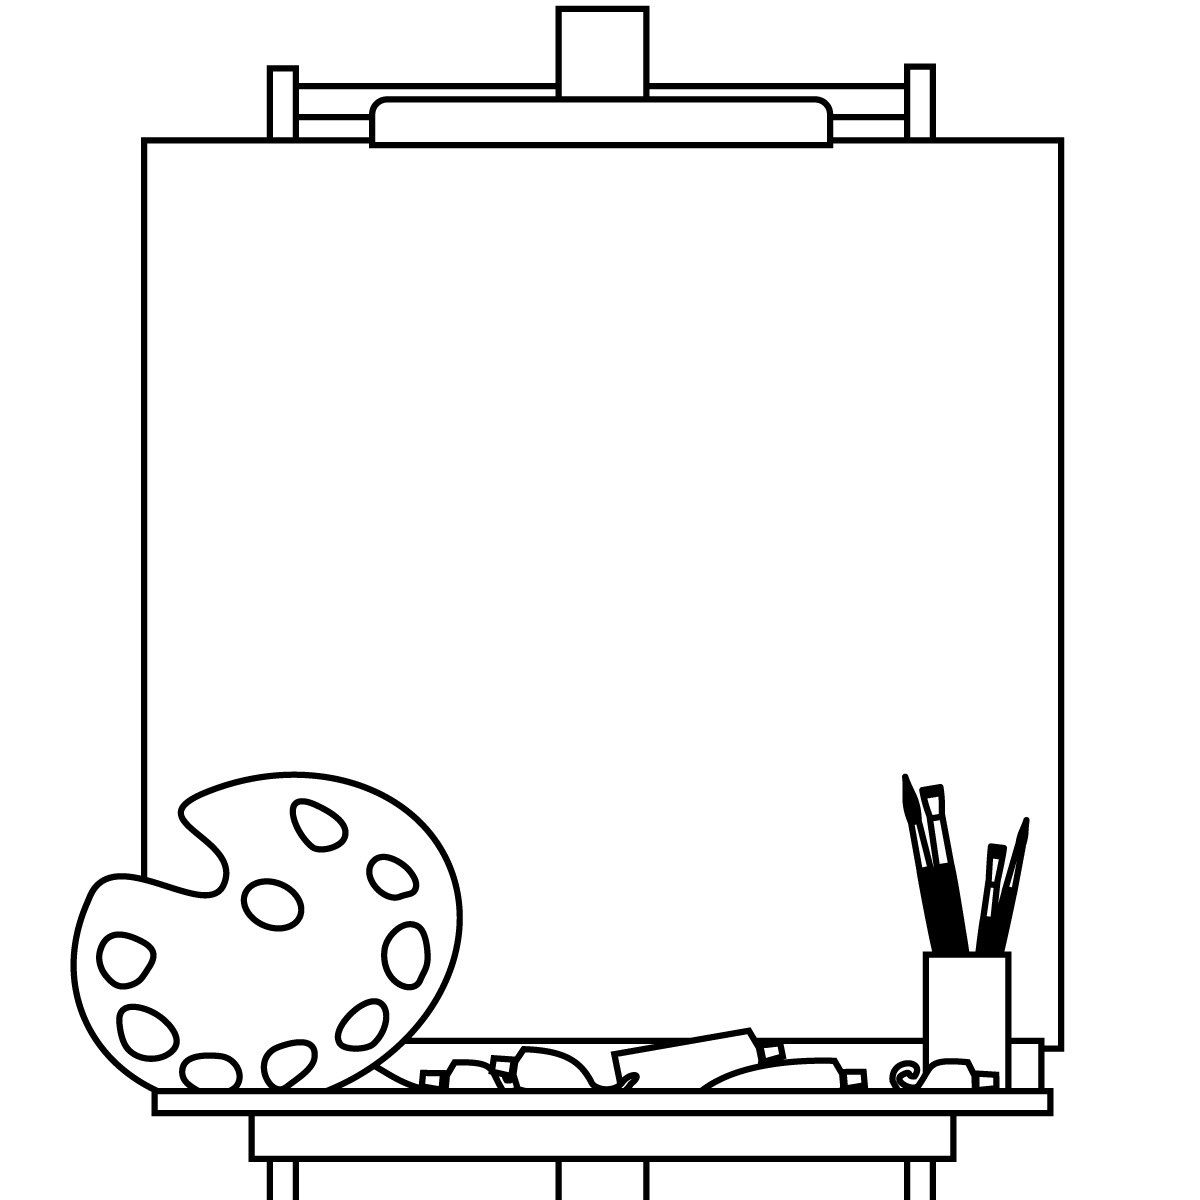 Easel Clipart Black And White ... 10 on -Easel Clipart Black And White ... 10 on Pinterest | Easels, .-14